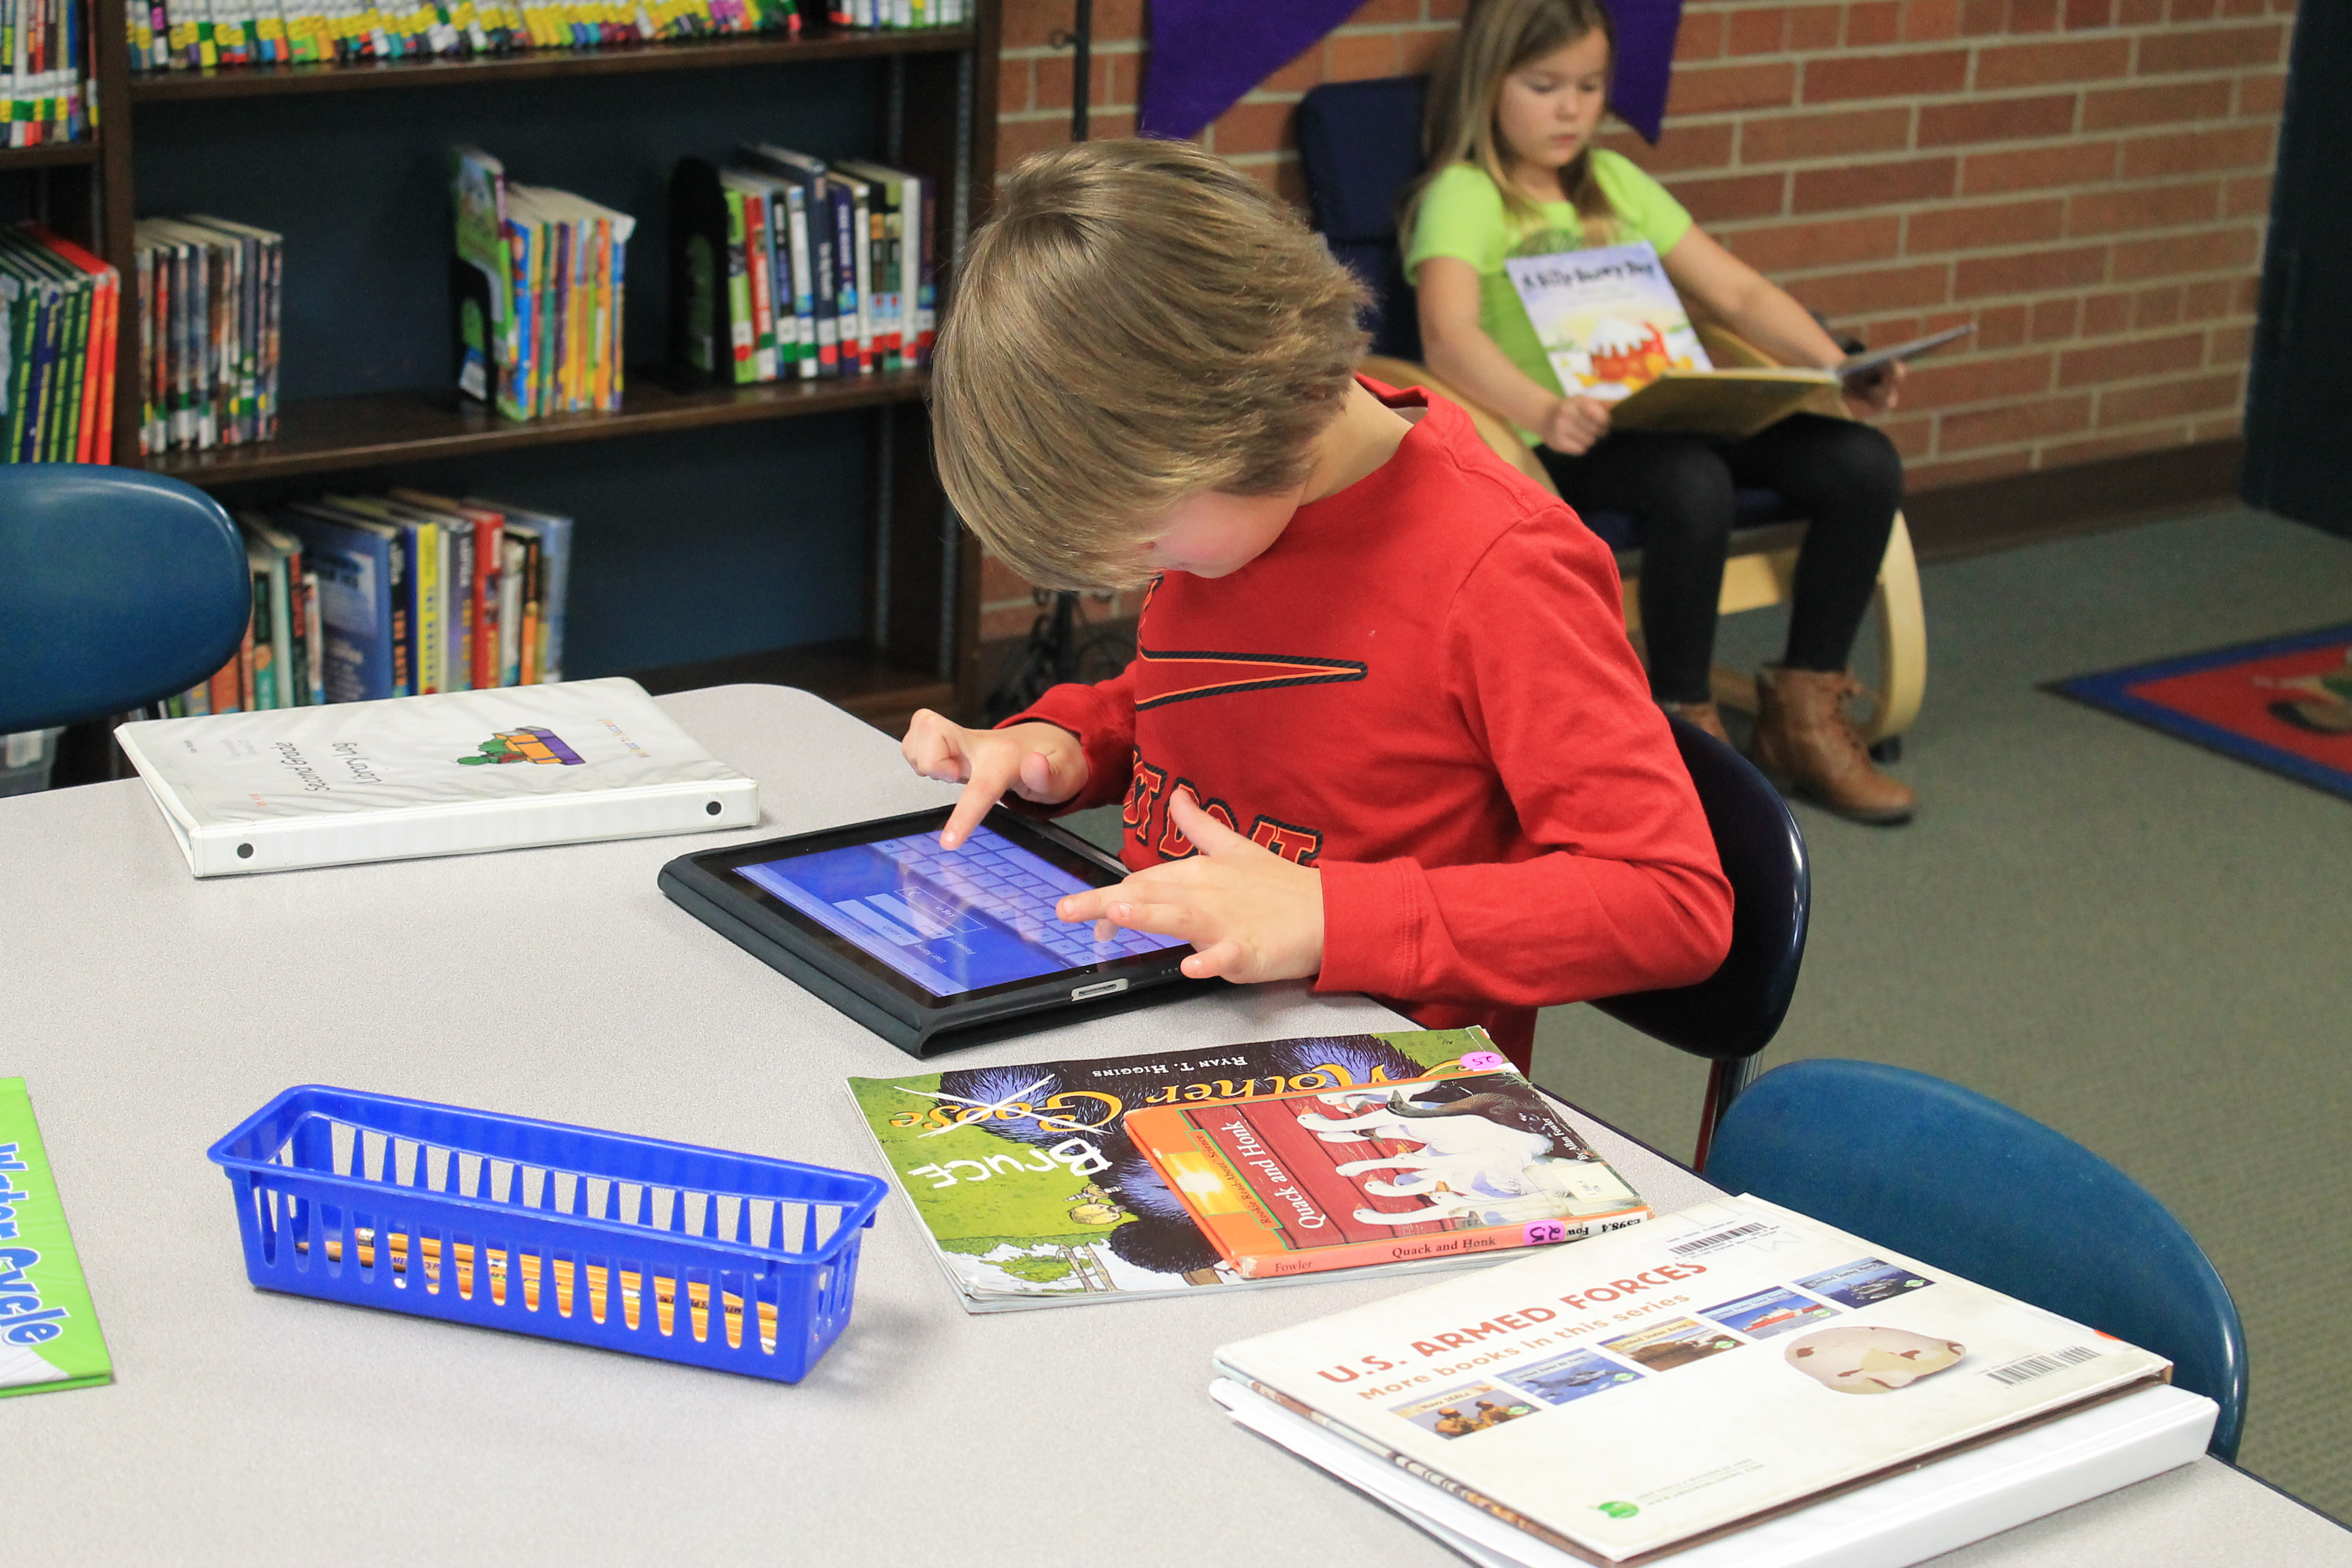 A small boy playing with an educational I-Pad in the library's school.